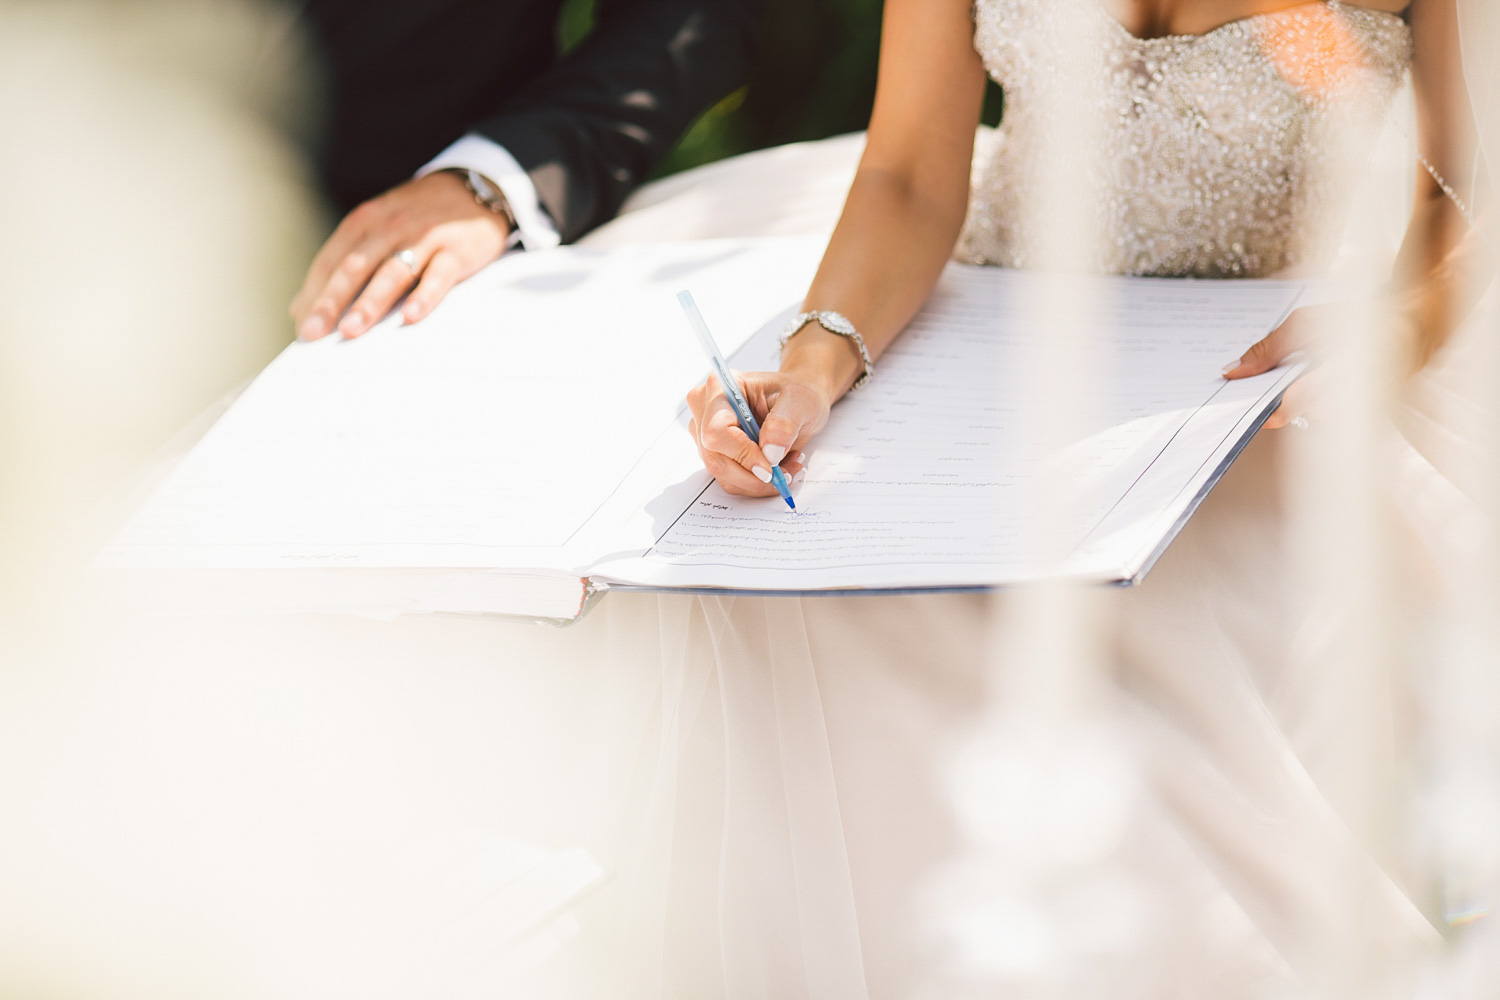 wedding certificate signing idea